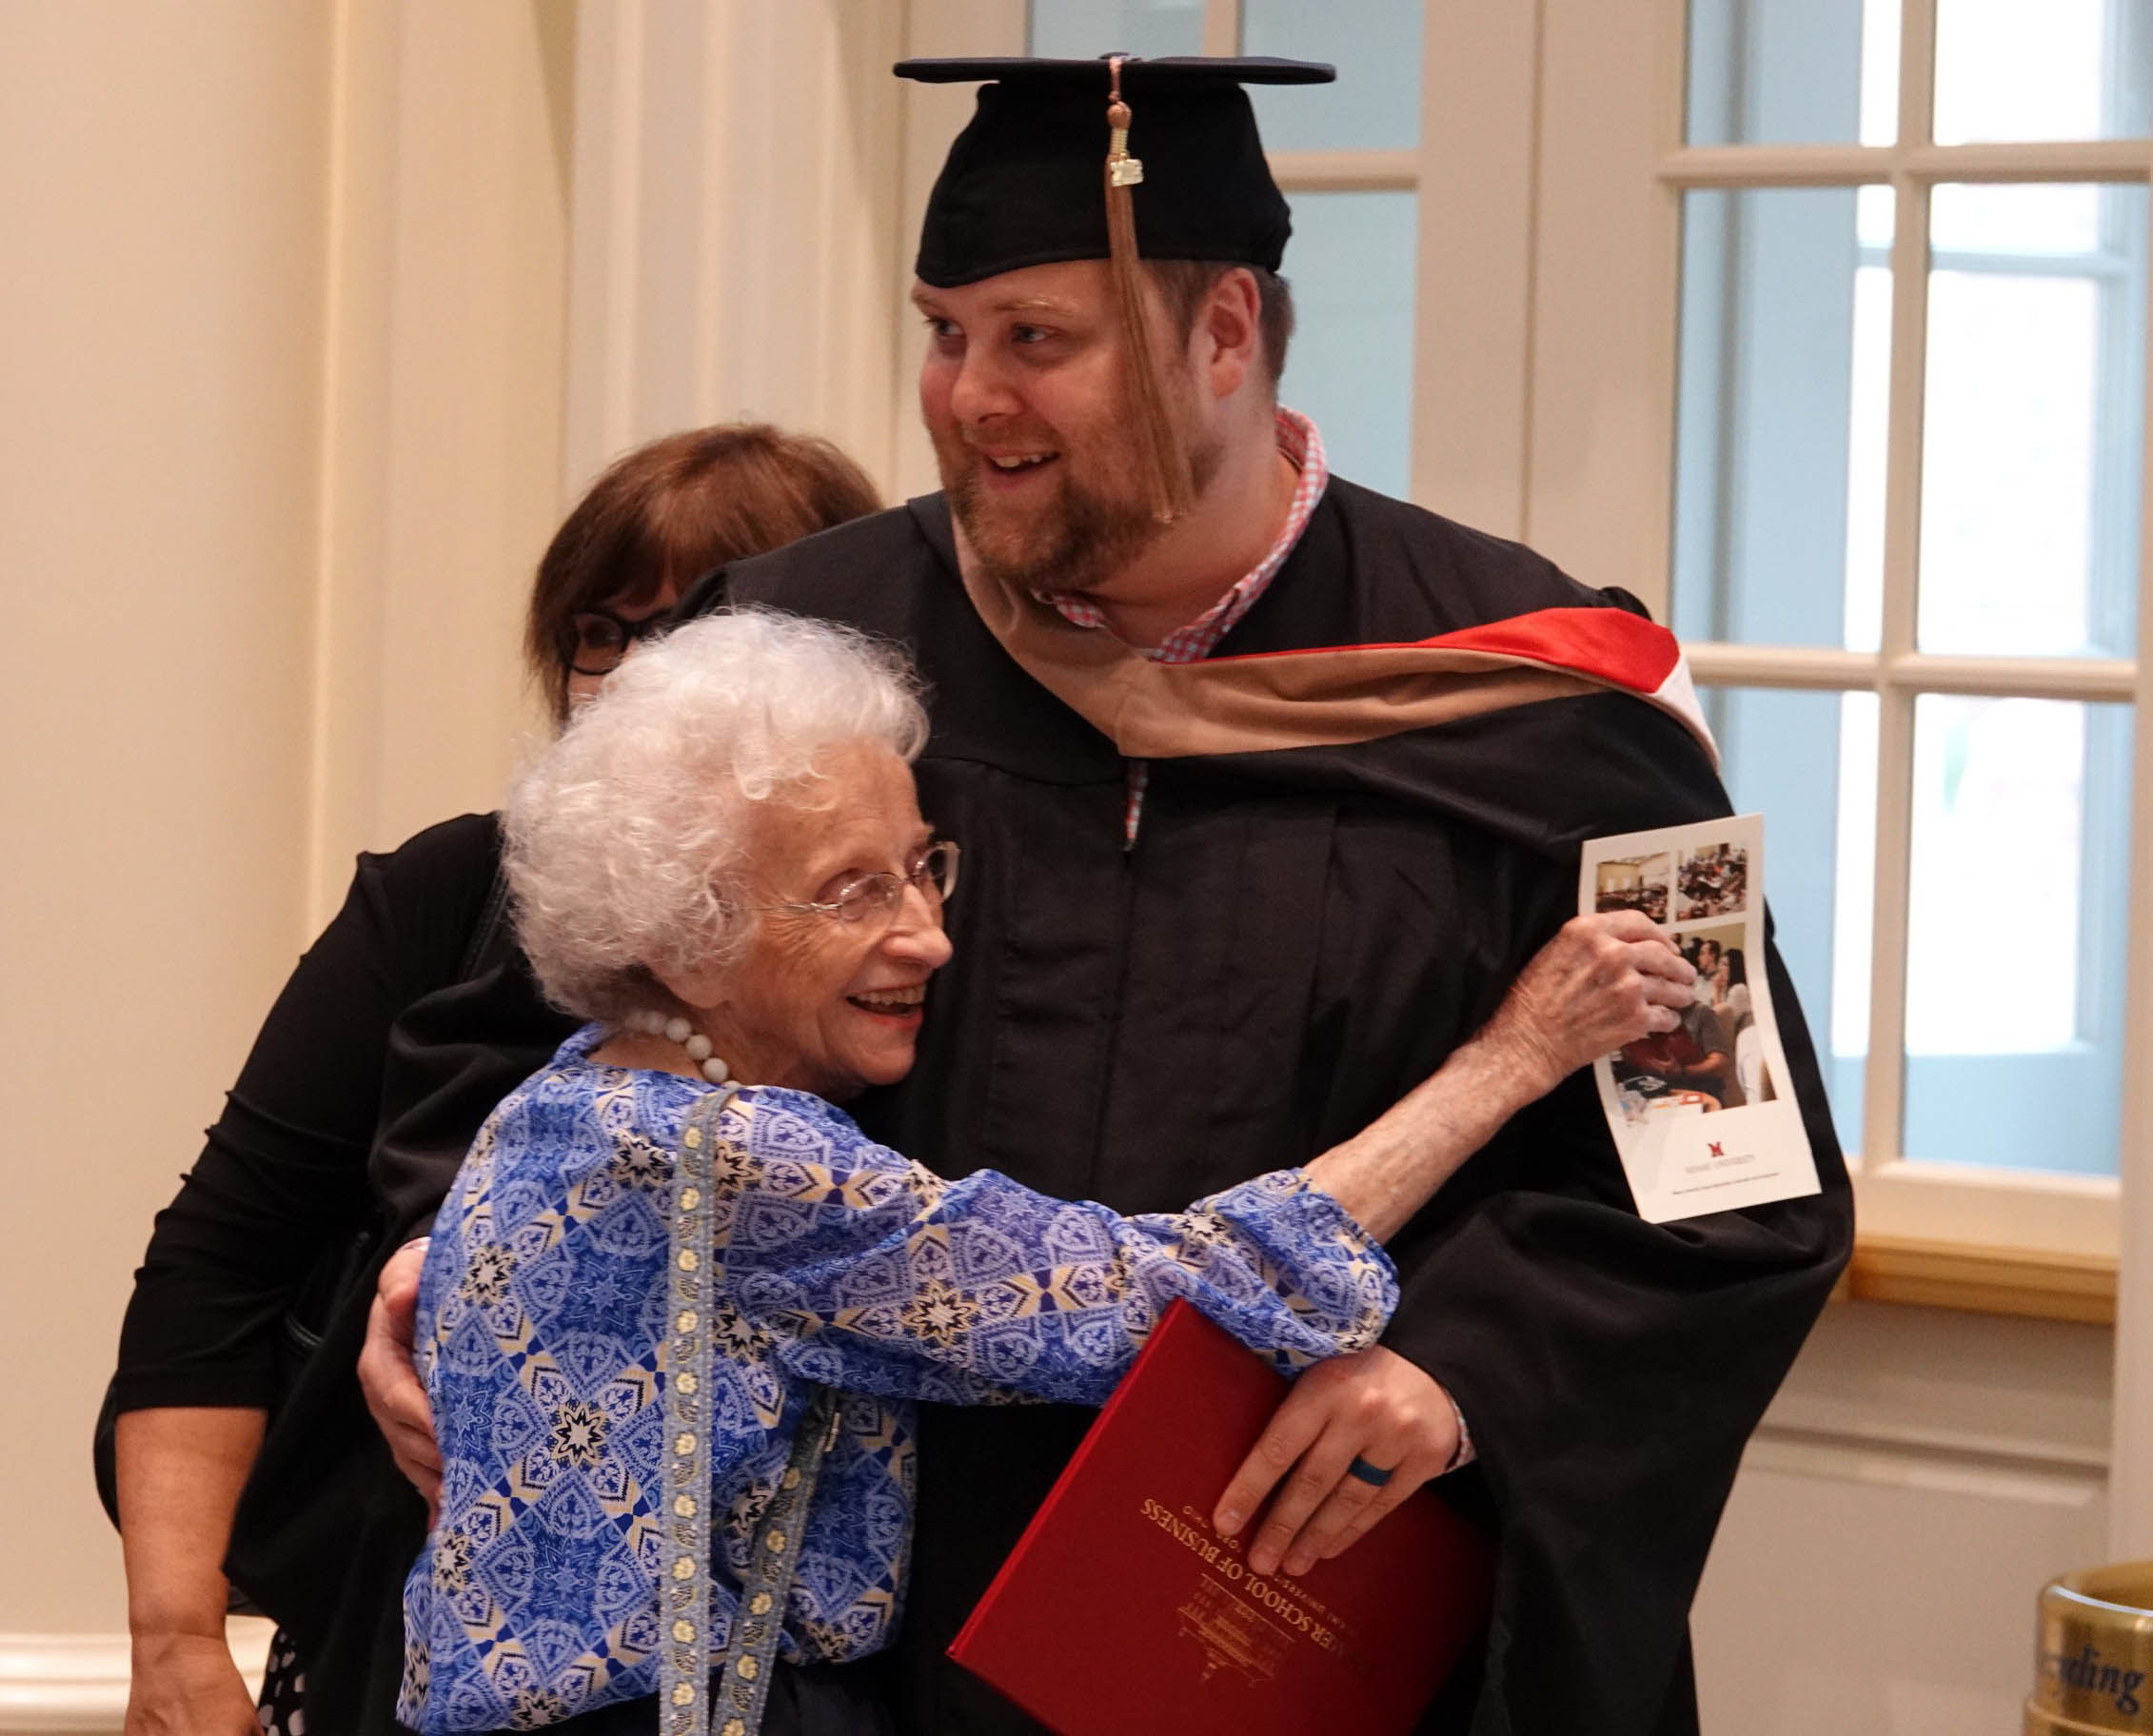 Graduate gets hug from grandmother